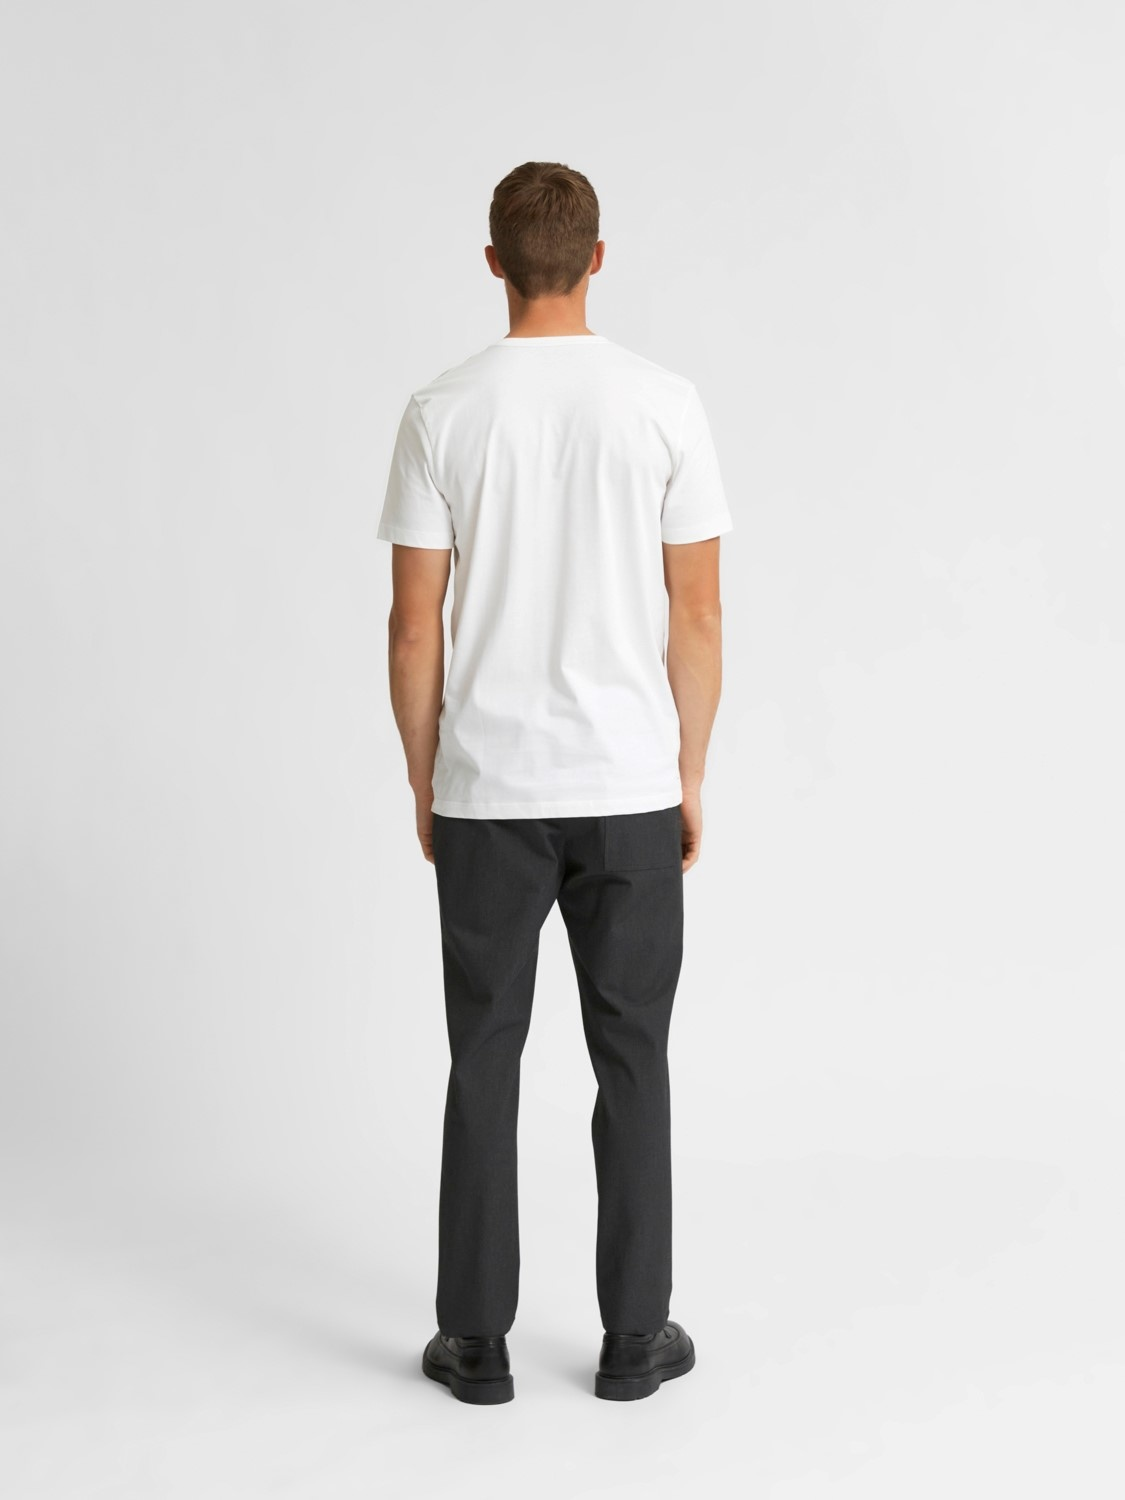 Selected SLHregroxy O-Neck T-shirt